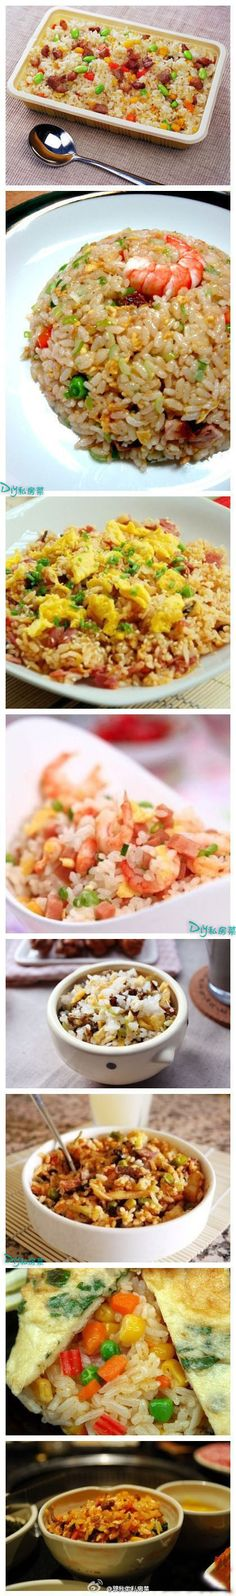 the simplest fried rice with egg and green onion is the best.